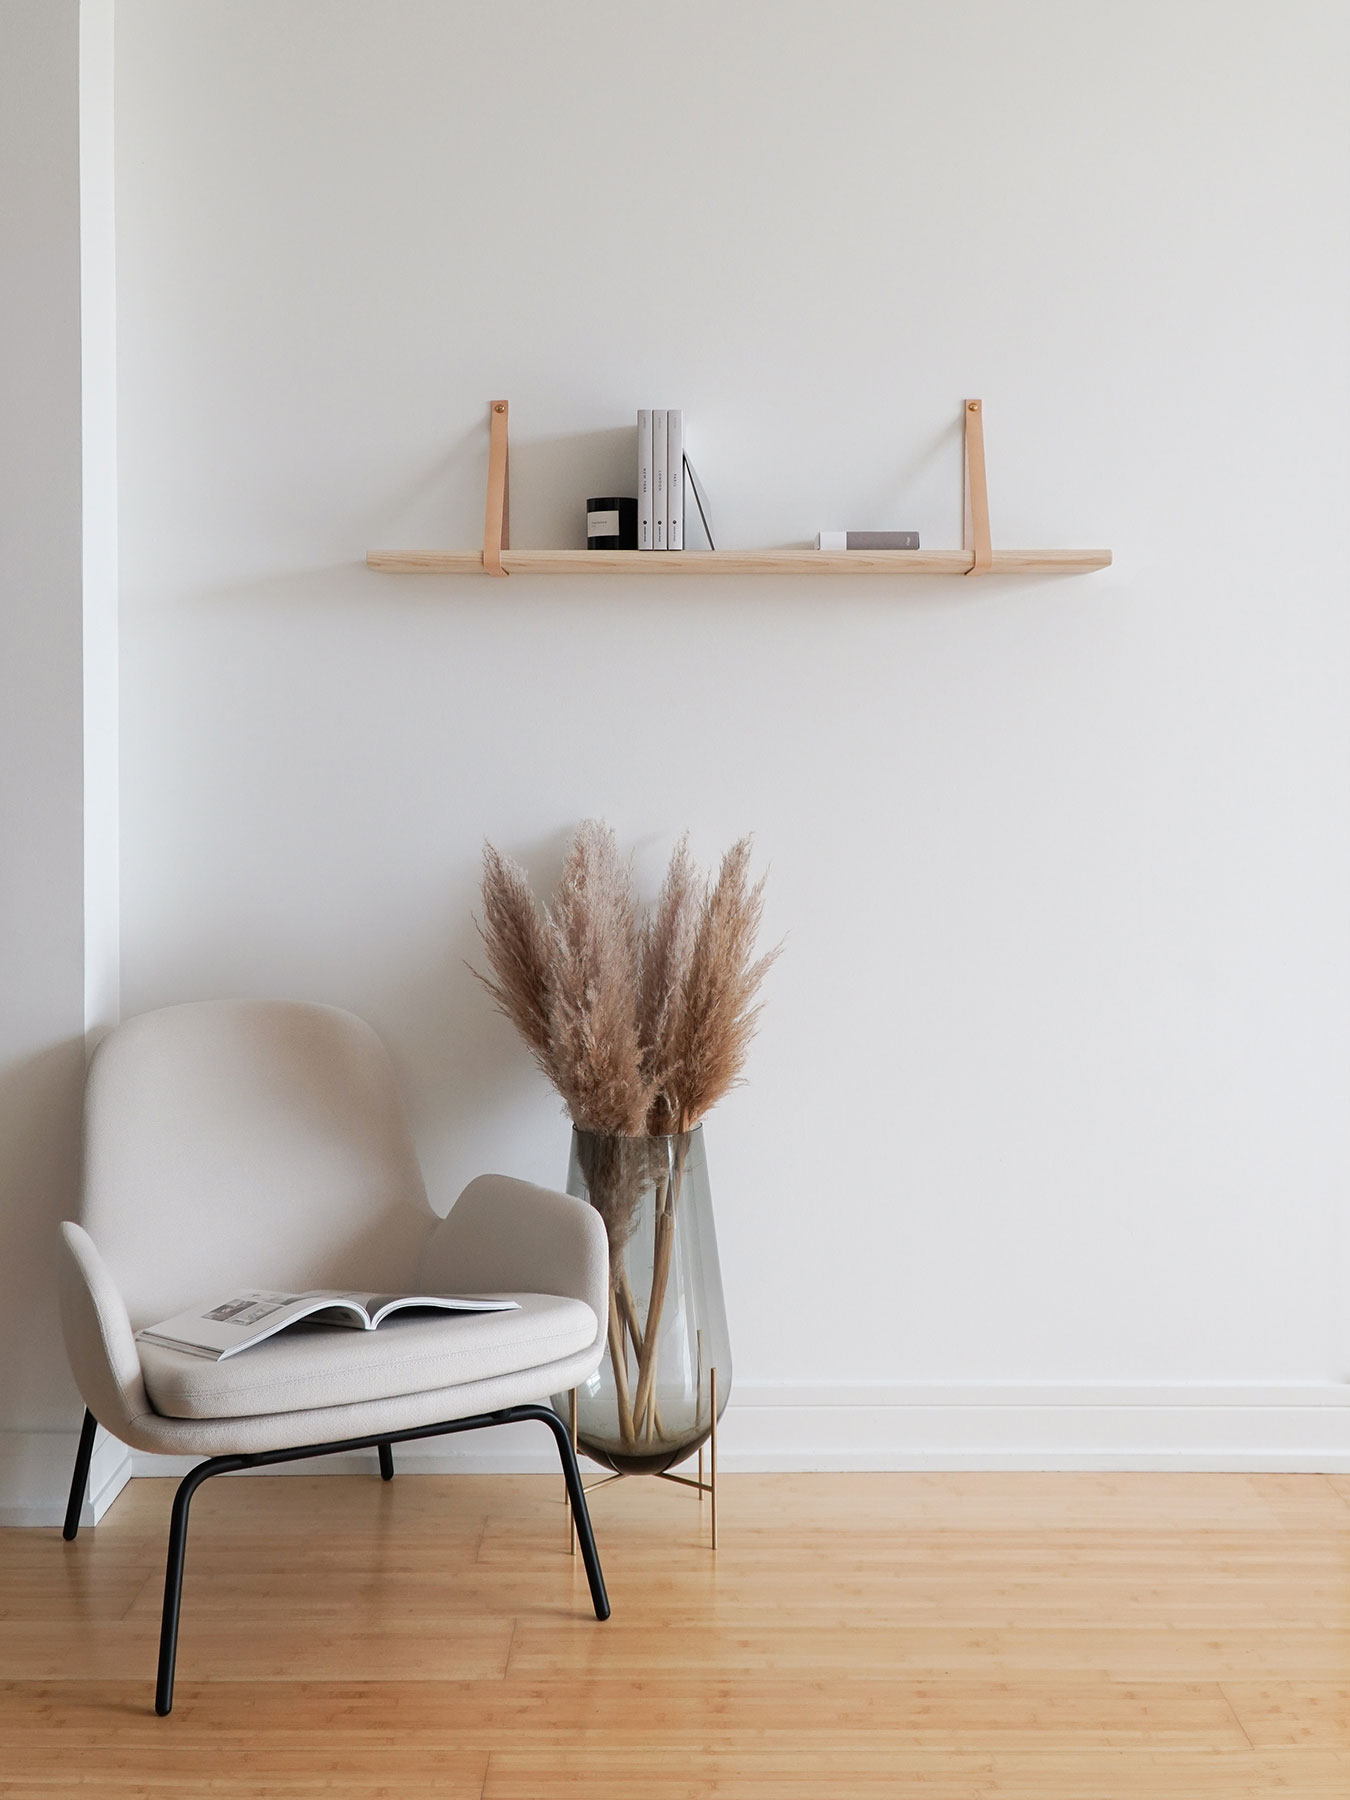 2020 Real Simple Home Preview: Woman Cave Shelf